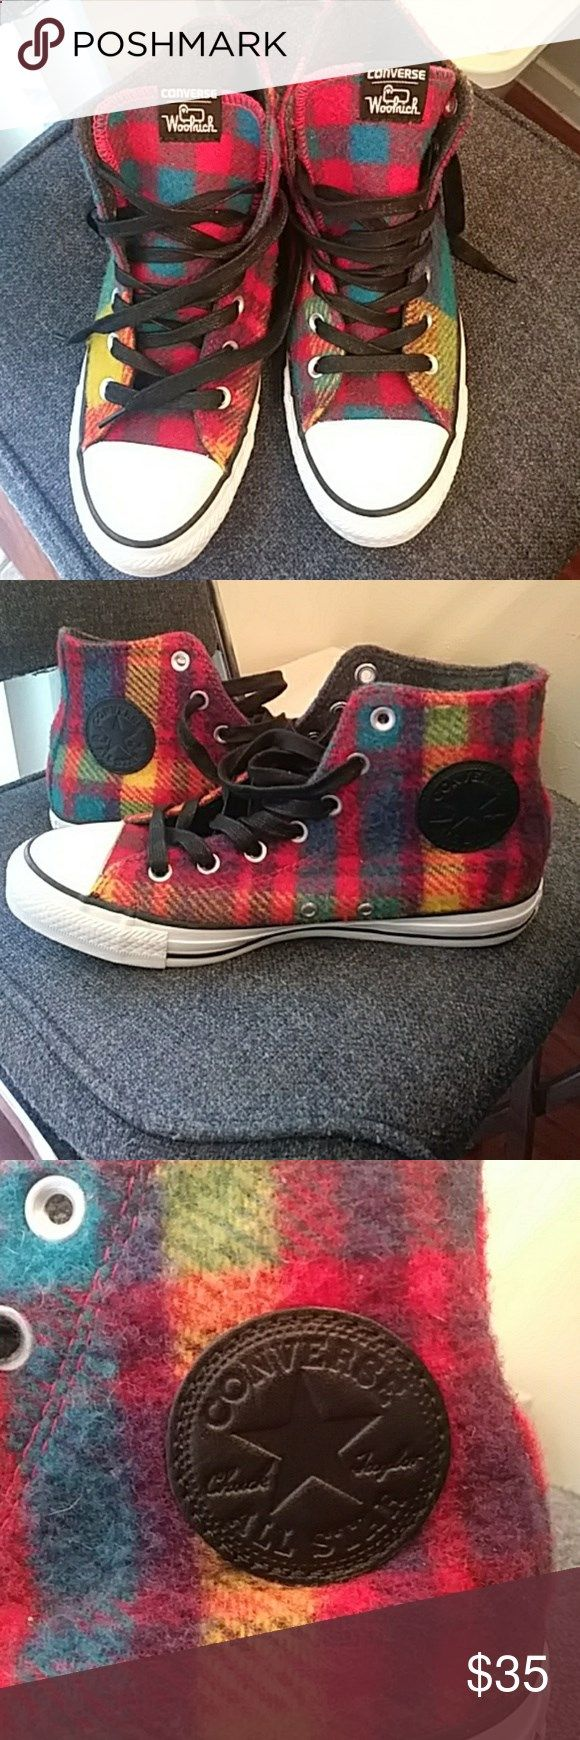 CONVERSE HI-TOPS - IN WOOLRICH WOOL MULTI-COLORED CONVERSE HI-TOPS - IN WOOLRICH WOOL MULTI-COLORED PLAID MENS OR WOMENS ATHLETIC/CASUAL SHOES WOOL UPPERS AND RUBBER SOLES MENS size 6 /WOMENS SIZE  IN EXCELLENT PRE-OWNED CONDITION - THESE HAVE BEEN MINIMALLY WORN  Converse Shoes